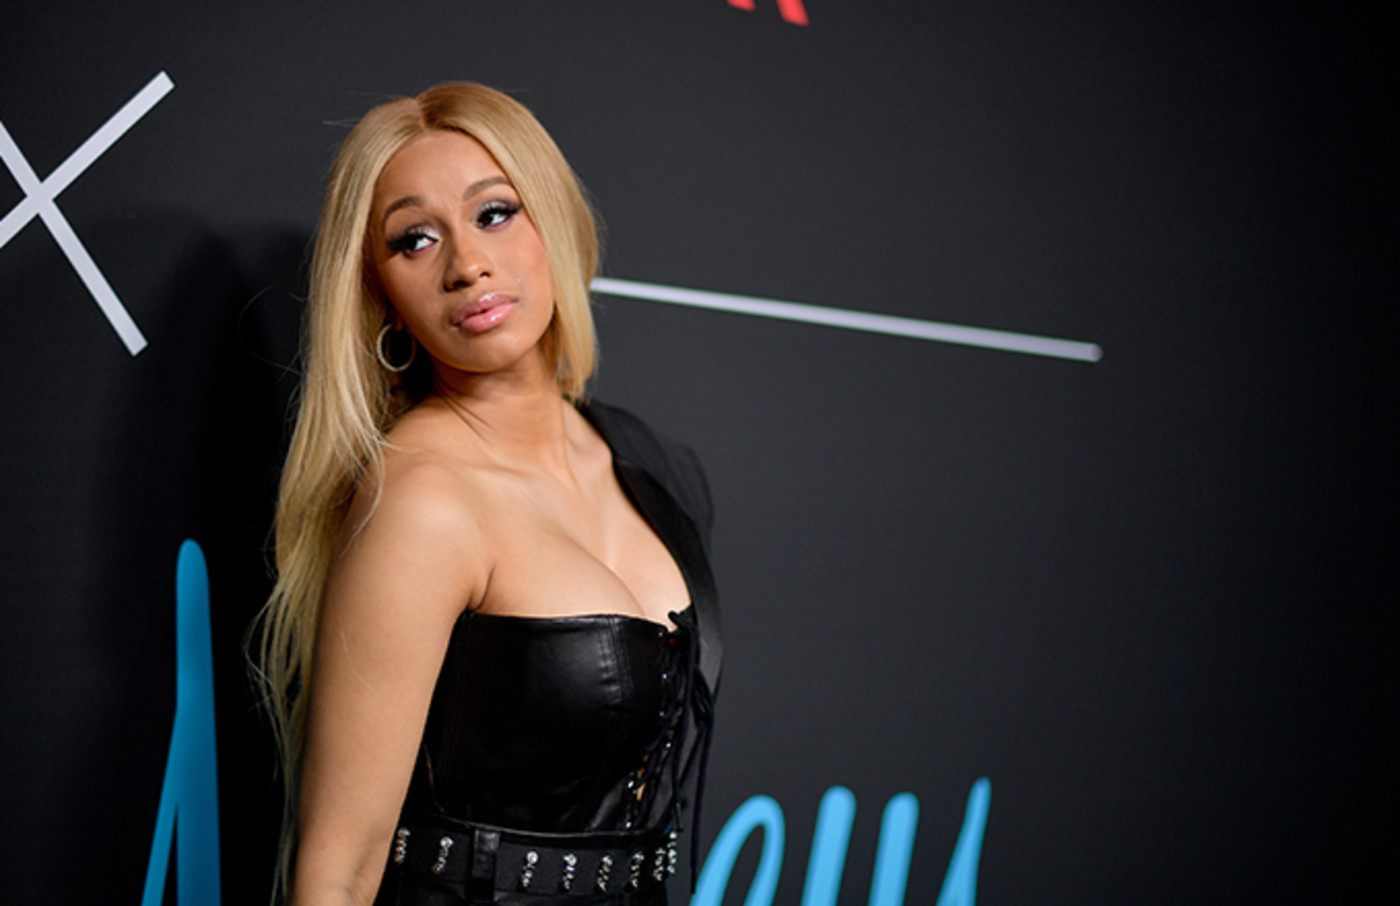 This is a photo of Cardi B.